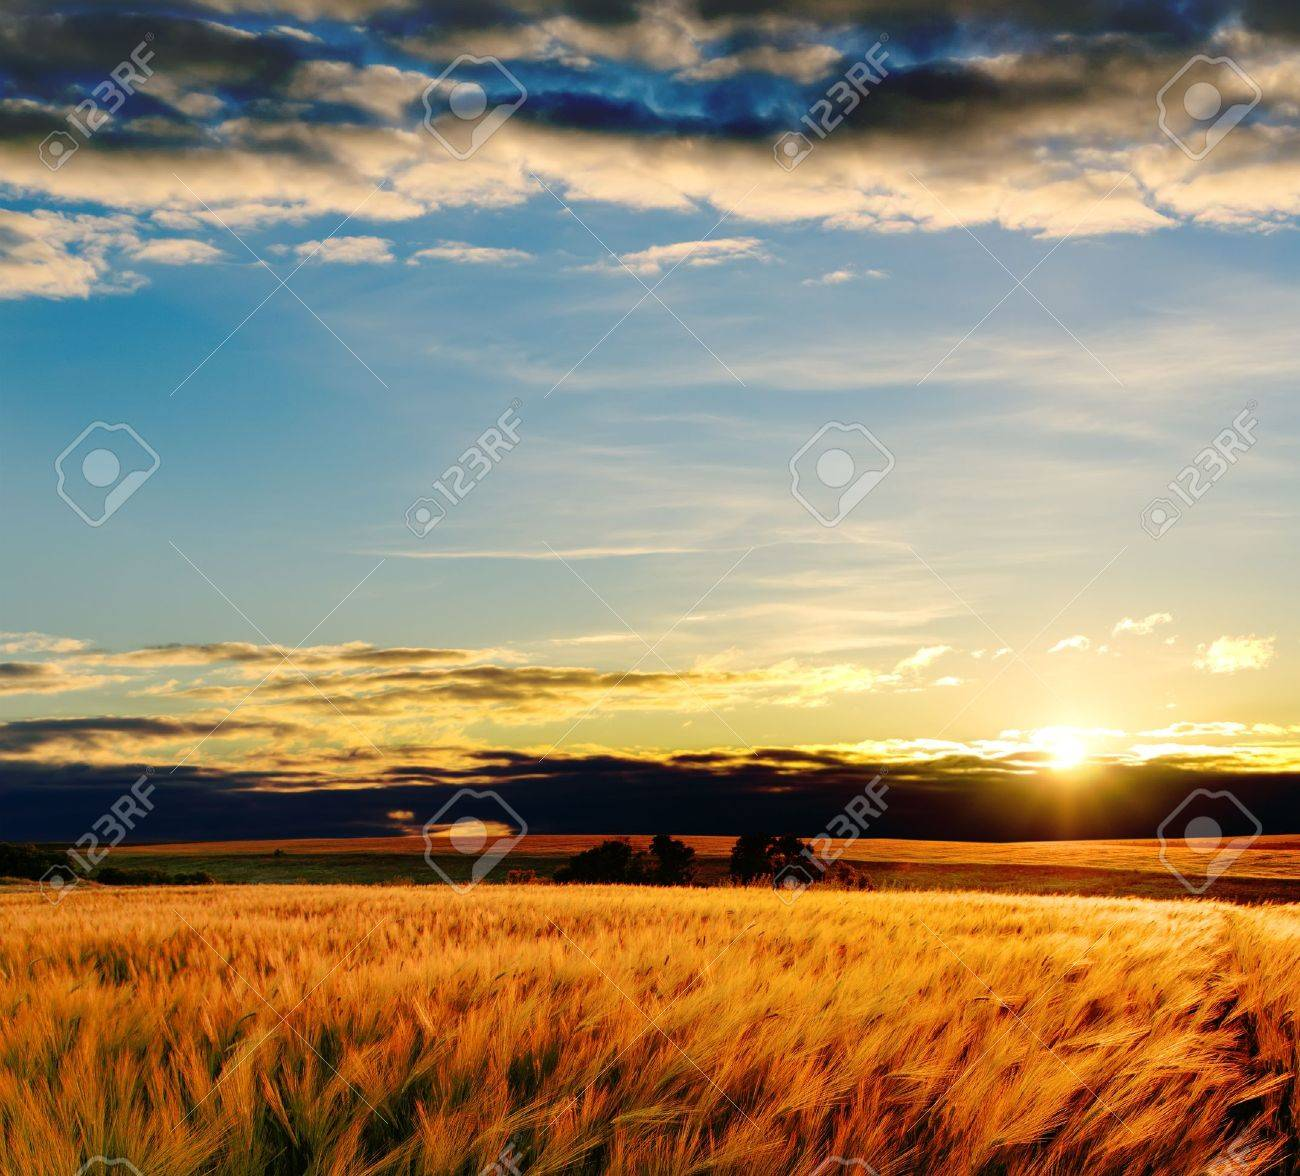 field with gold barley in sunset Stock Photo - 9877509